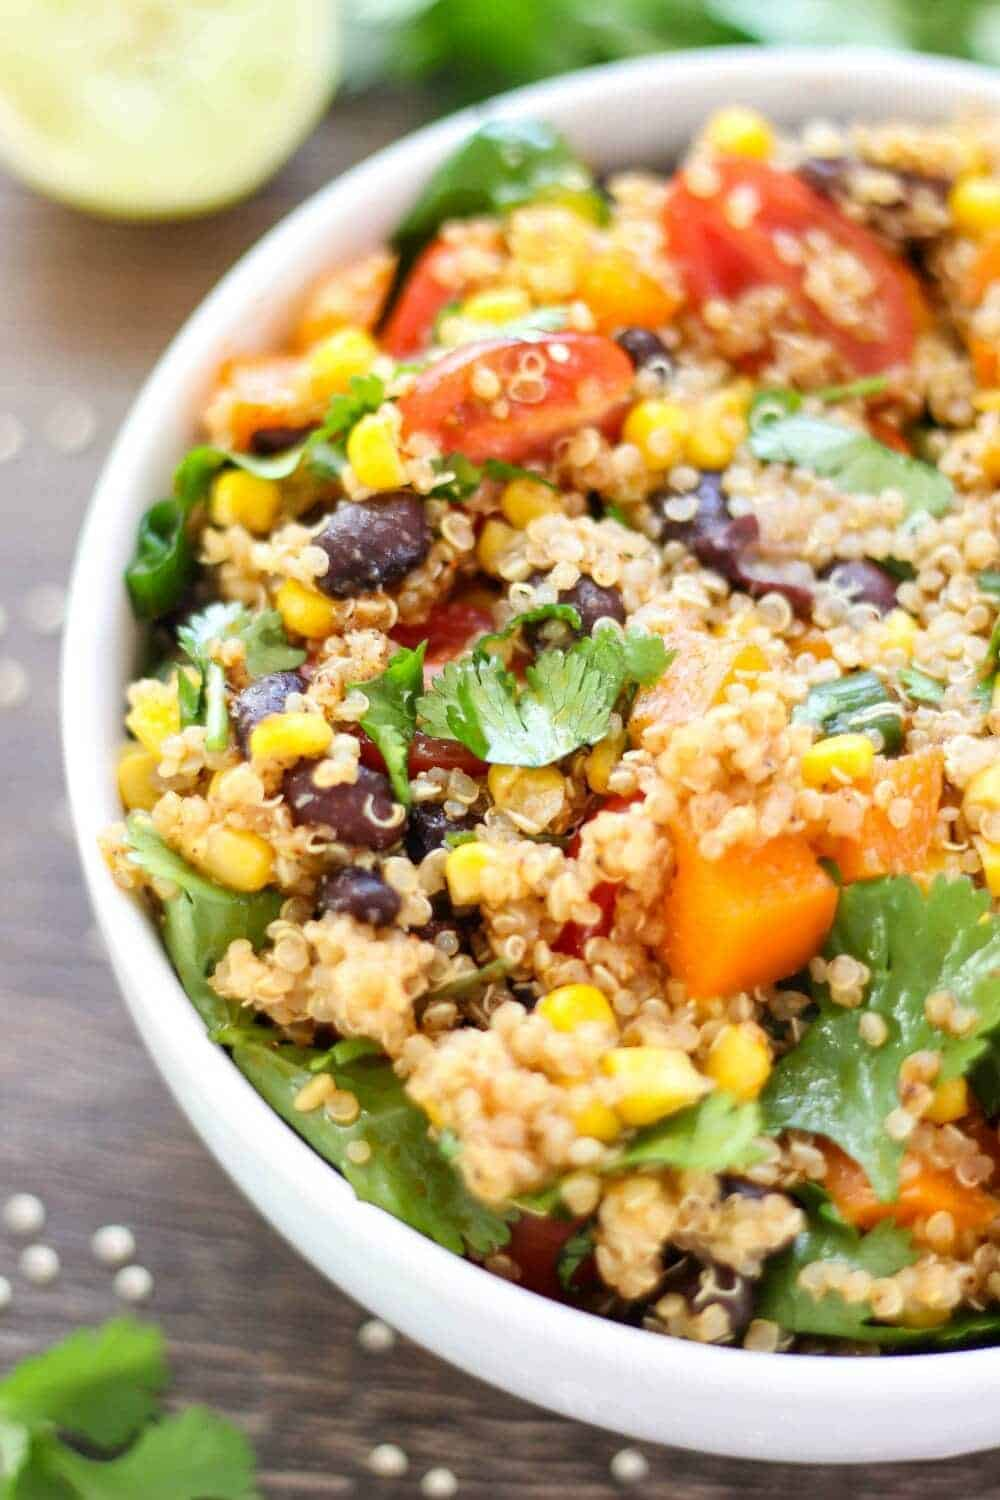 Southwest quinoa salad i heart nap time southwest quinoa salad delicious as a flavorful side dish or hearty main meal made forumfinder Image collections